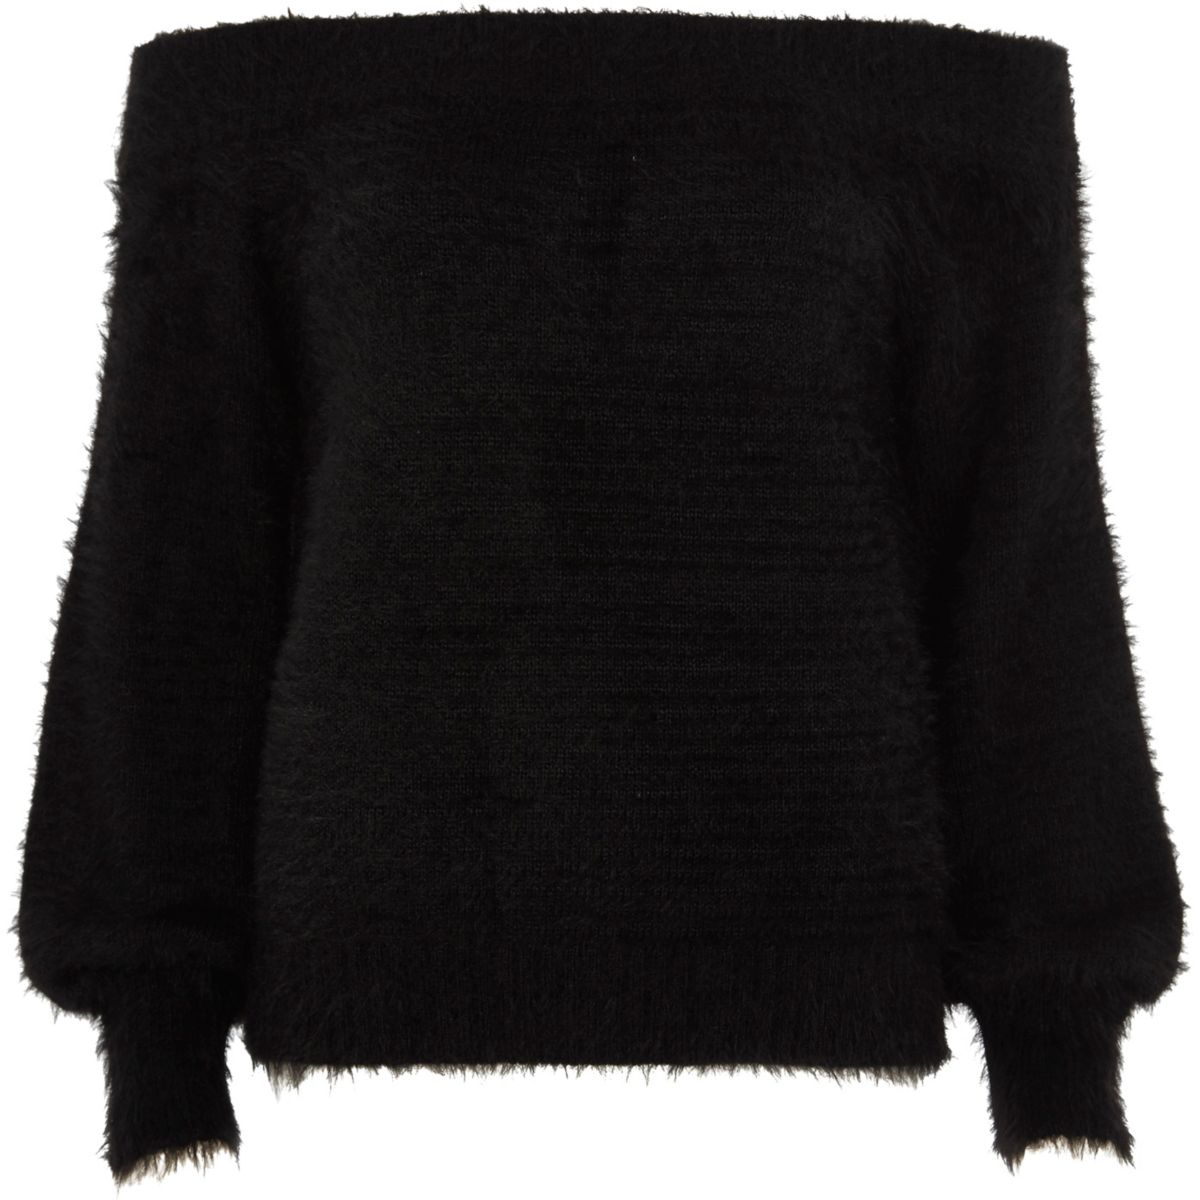 Black bardot fluffy knit sweater